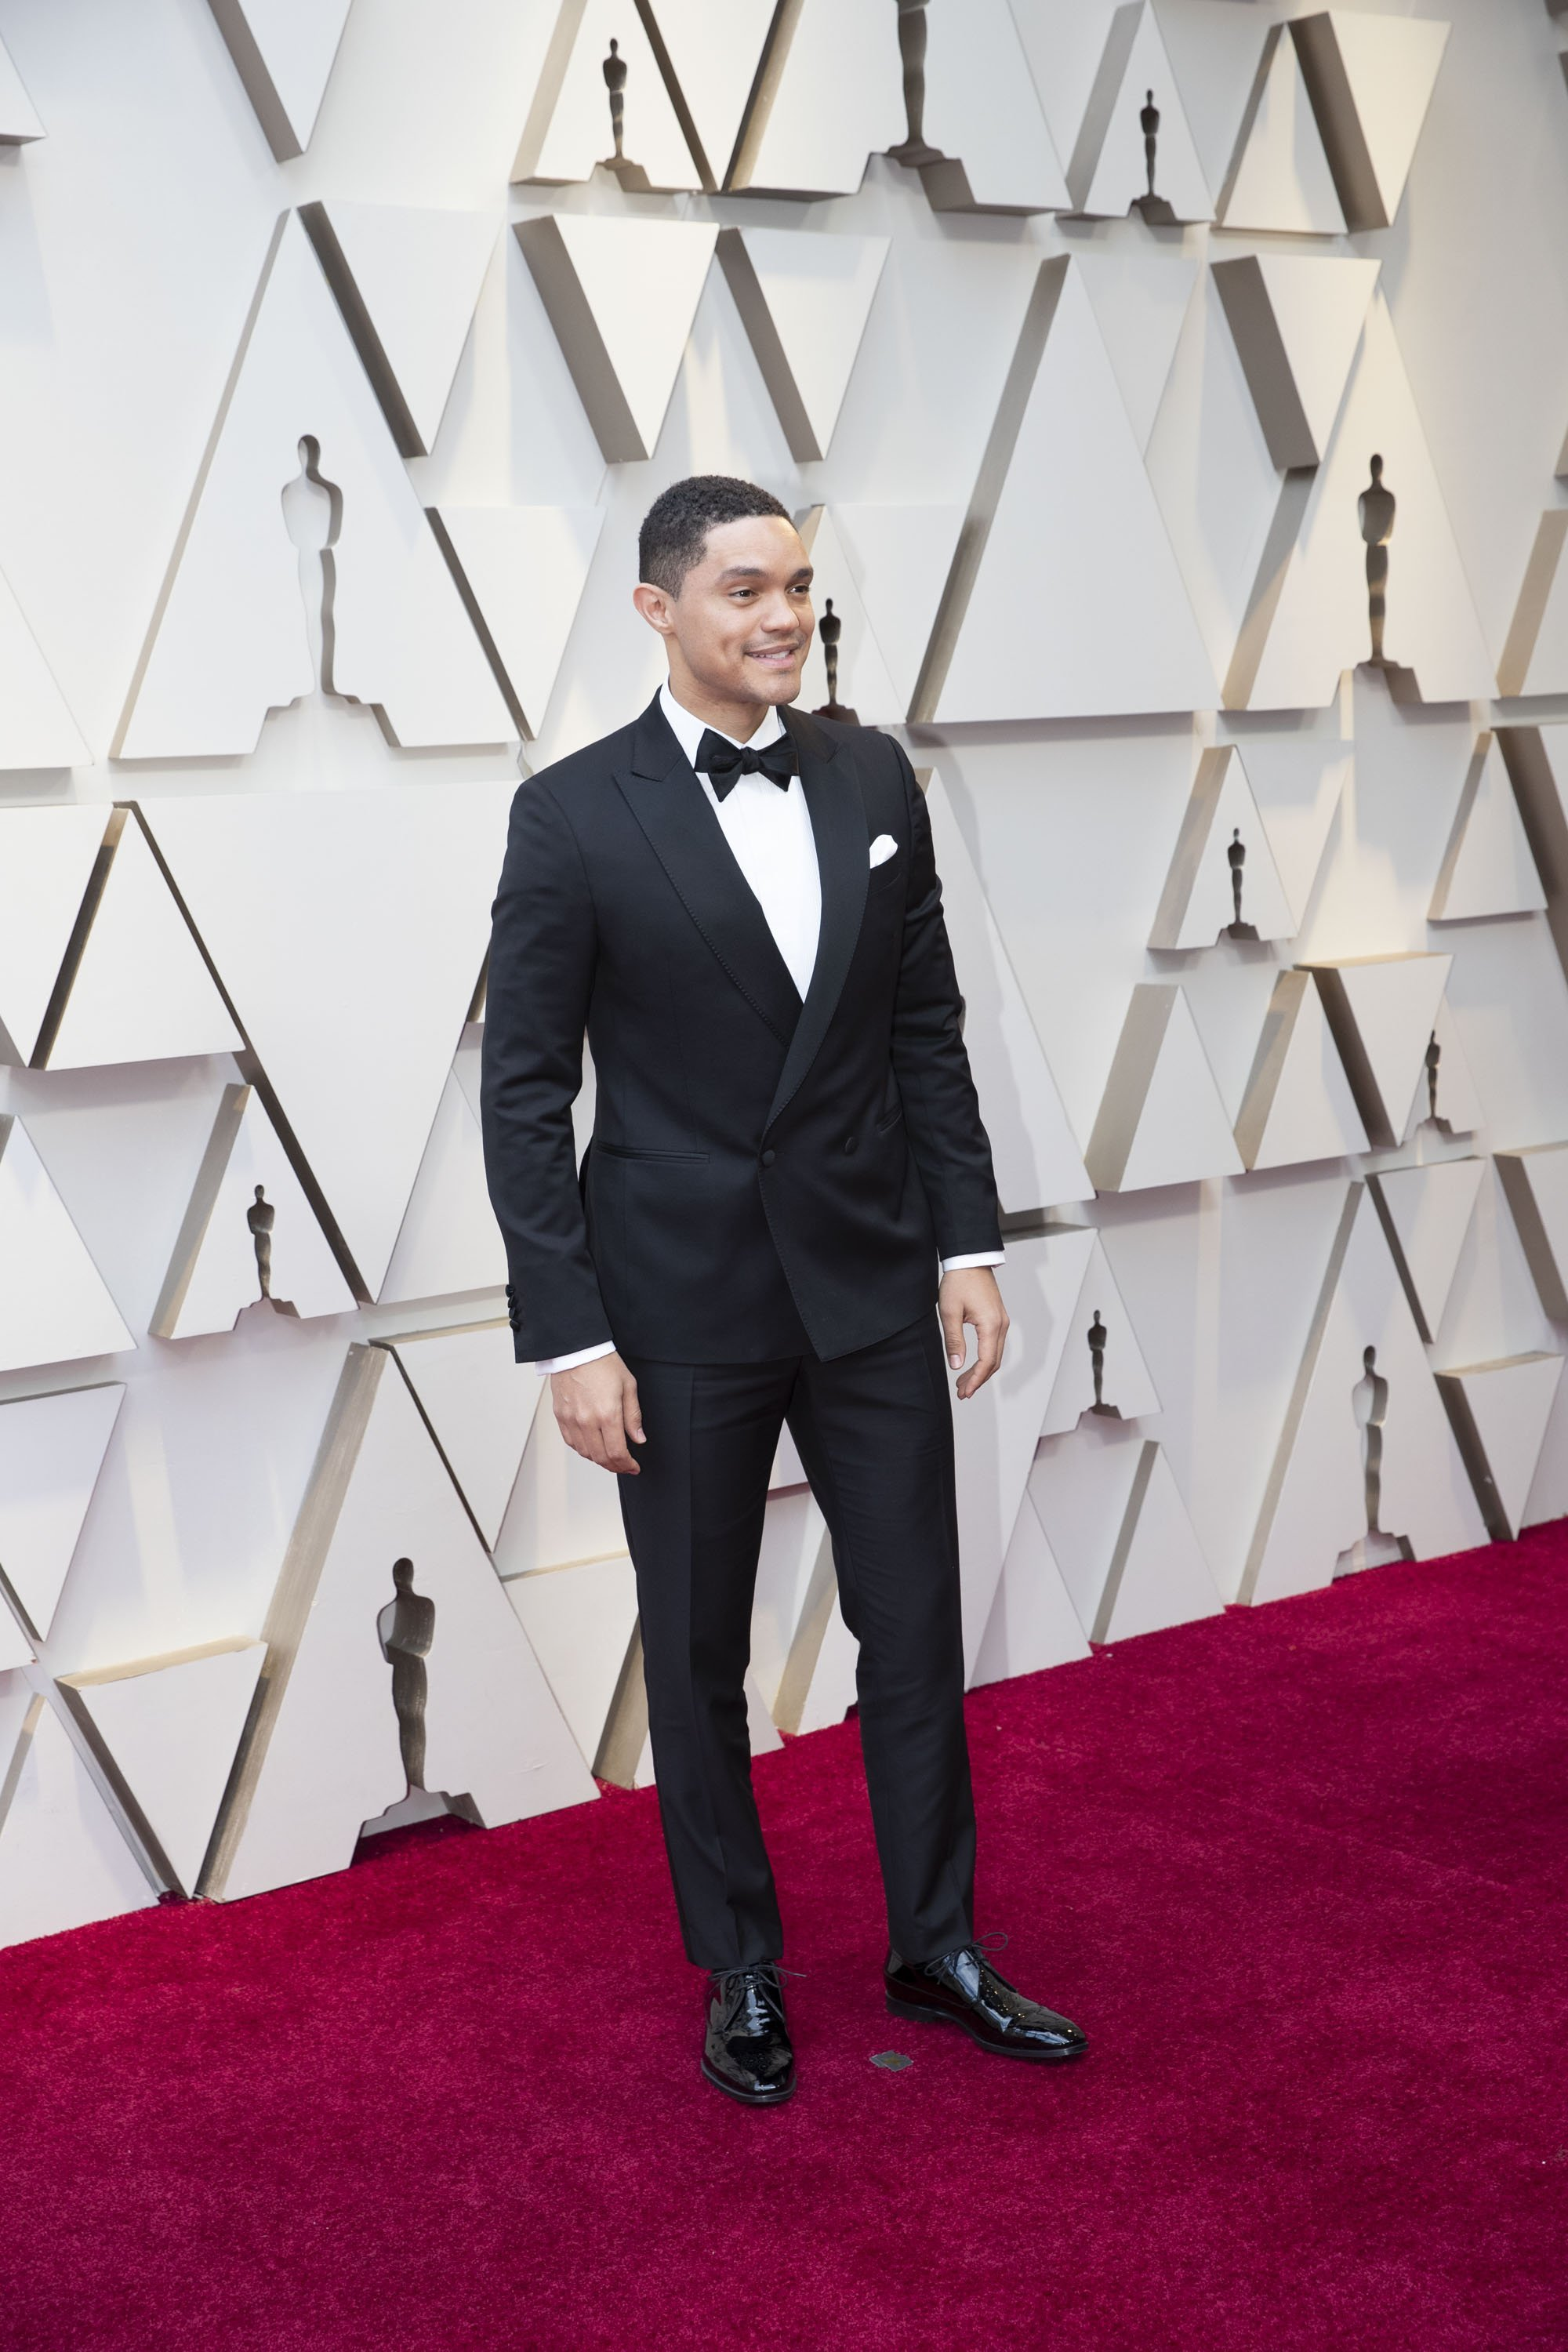 Trevor Noah: Red Carpet from the The 91st Oscar broadcast on Sunday, Feb. 24, 2019, at the Dolby Theatre.